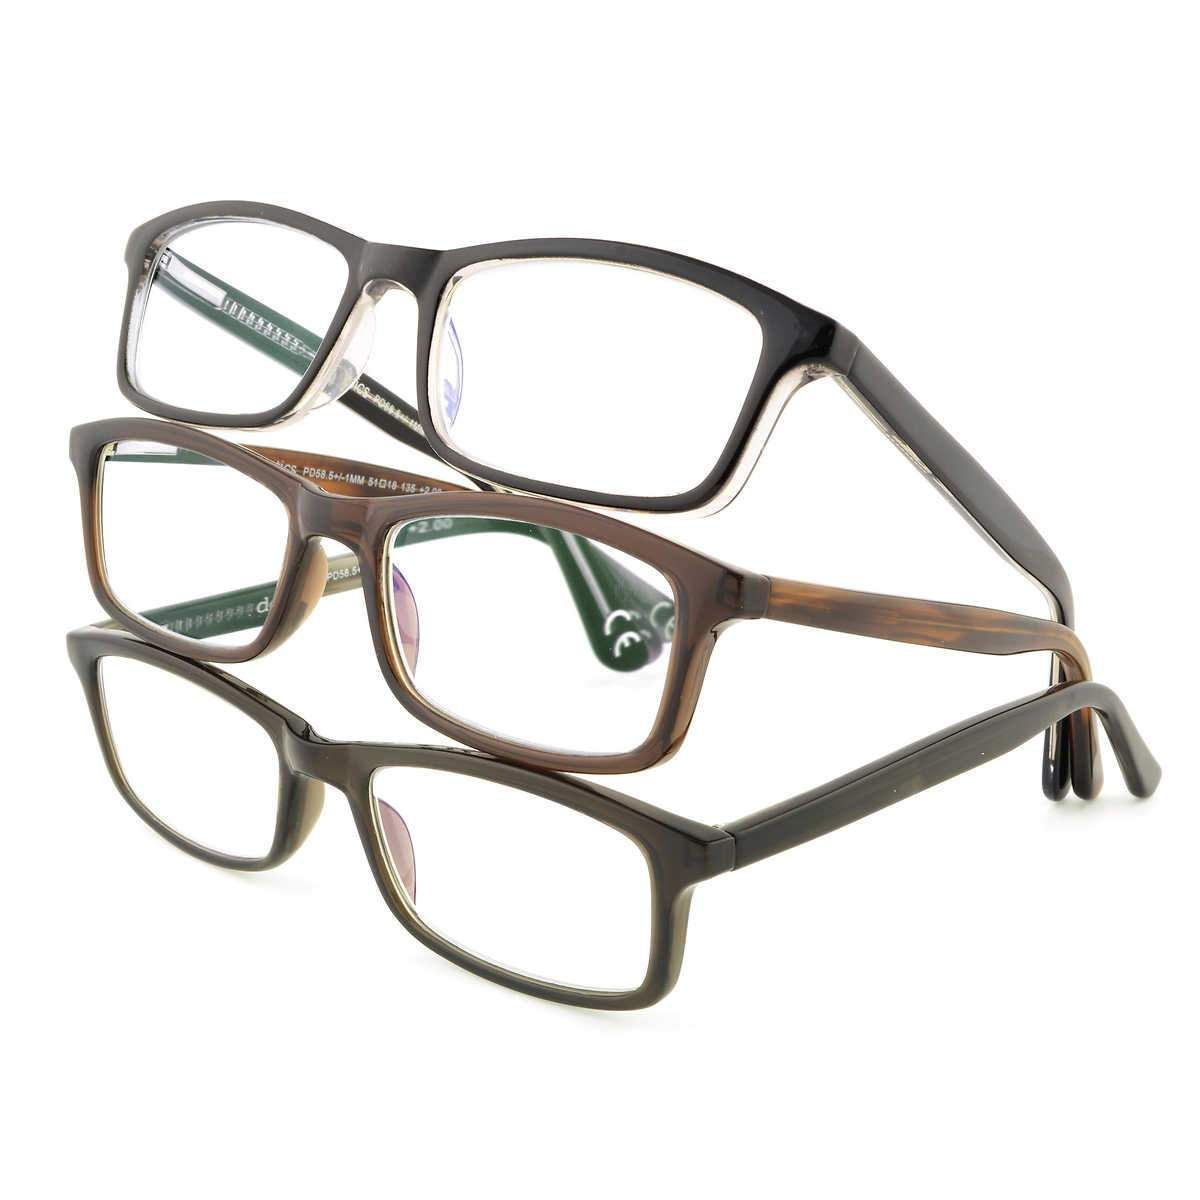 Design Optics By Foster Grant 3-pack Reading Glasses